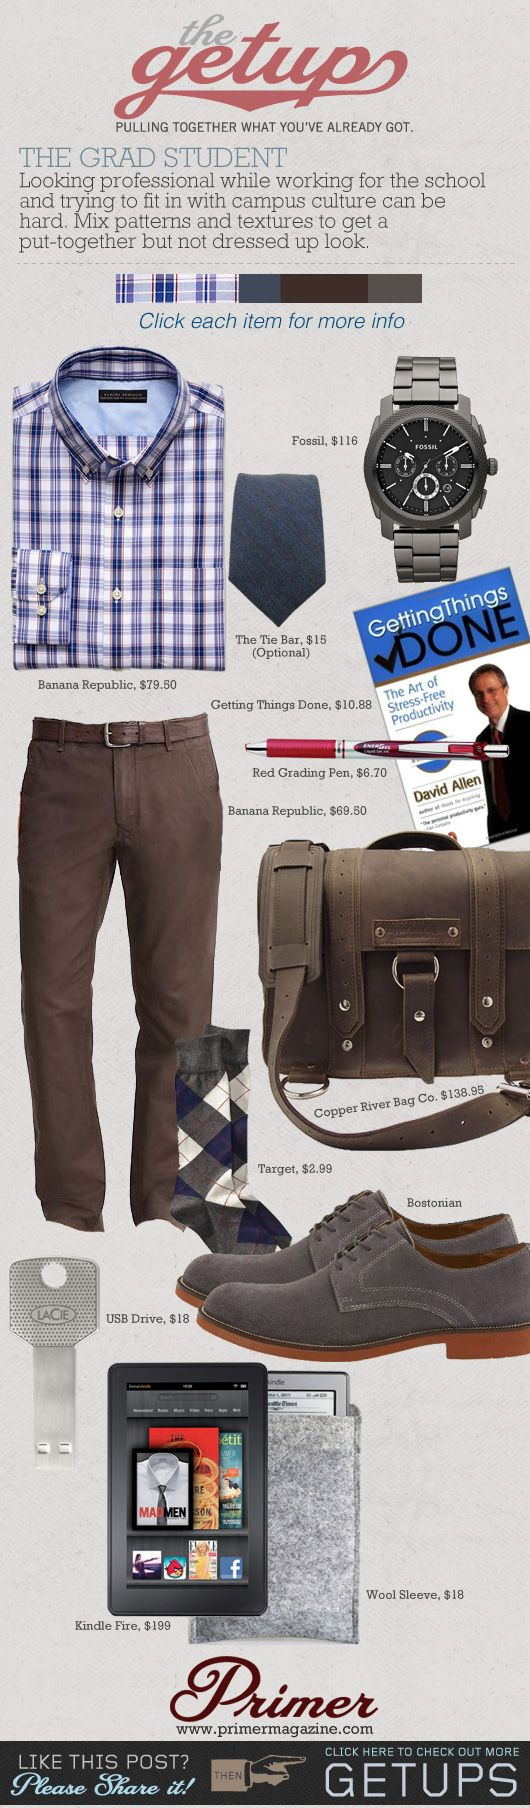 The Getup: The Grad Student | Primer